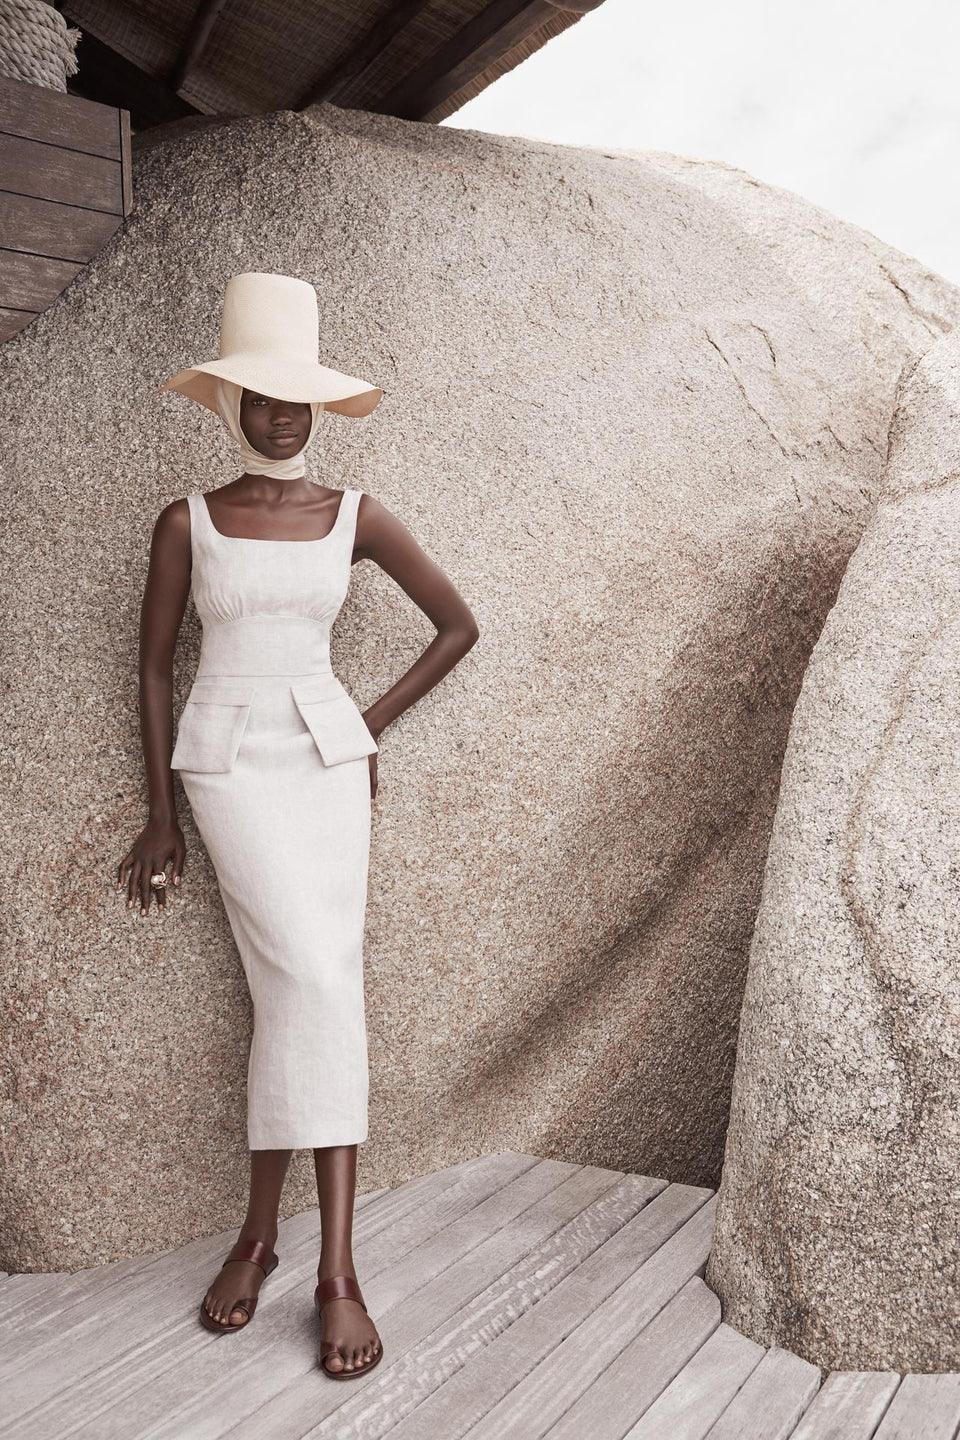 CARL KAPP SS2020 collection in Seychelles Six Senses Zil Pasyon |  Desroches dress